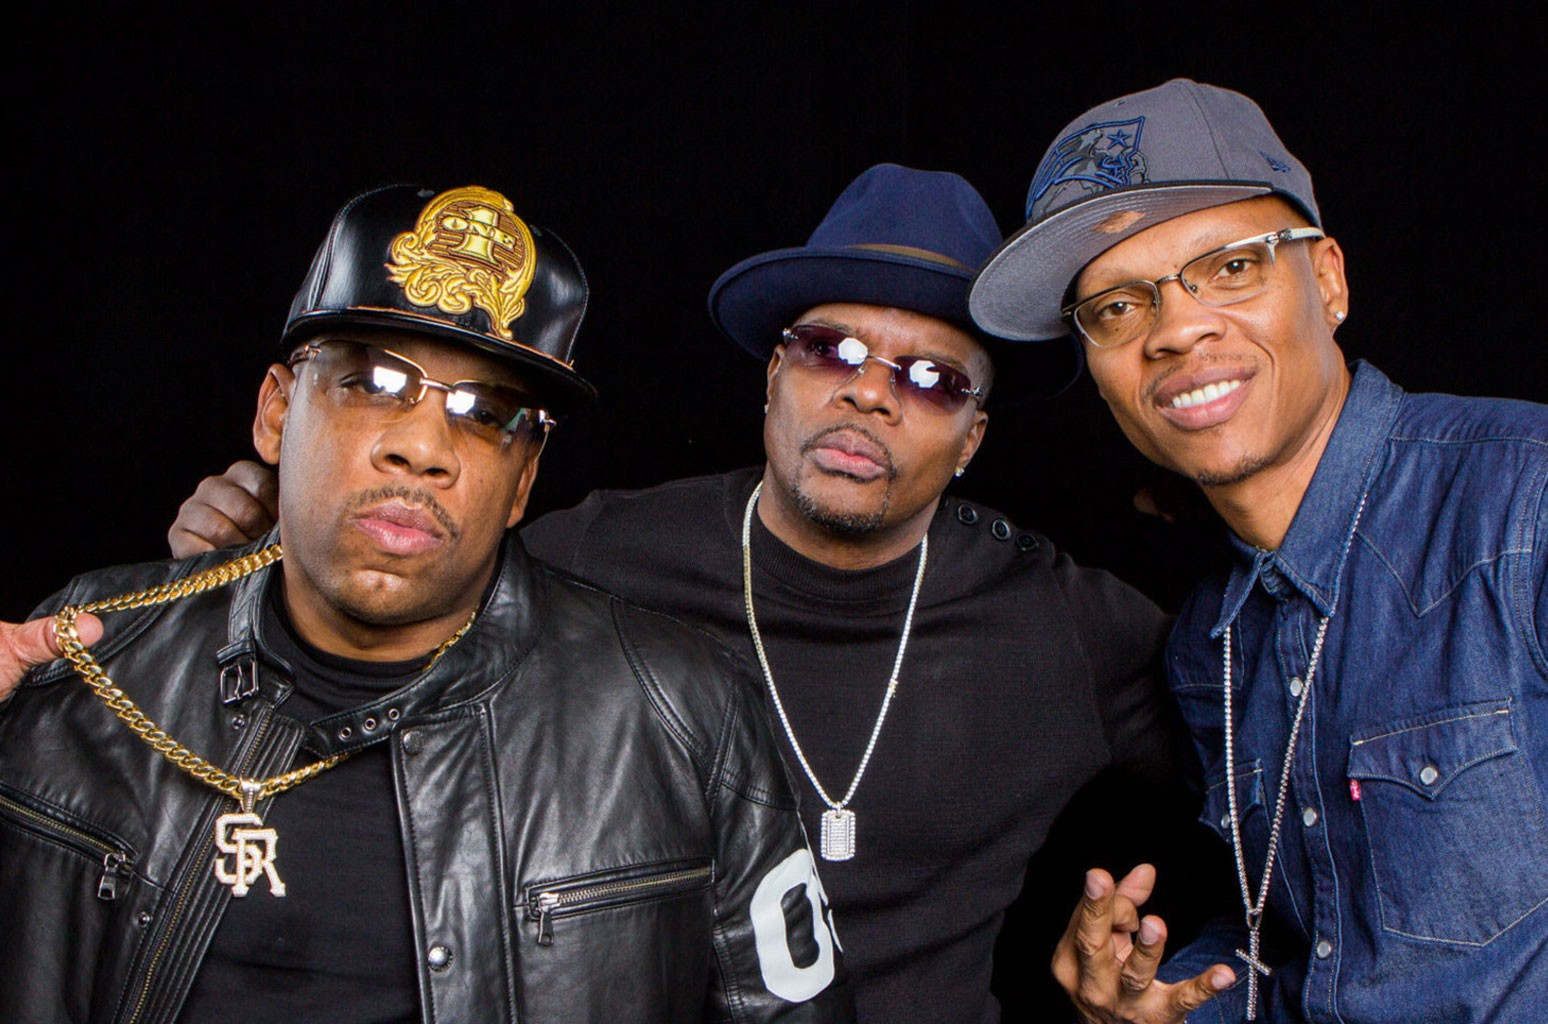 Bell Biv DeVoe & Nelly to Bring Throwback Hip-Hop to American Music Awards - Billboard